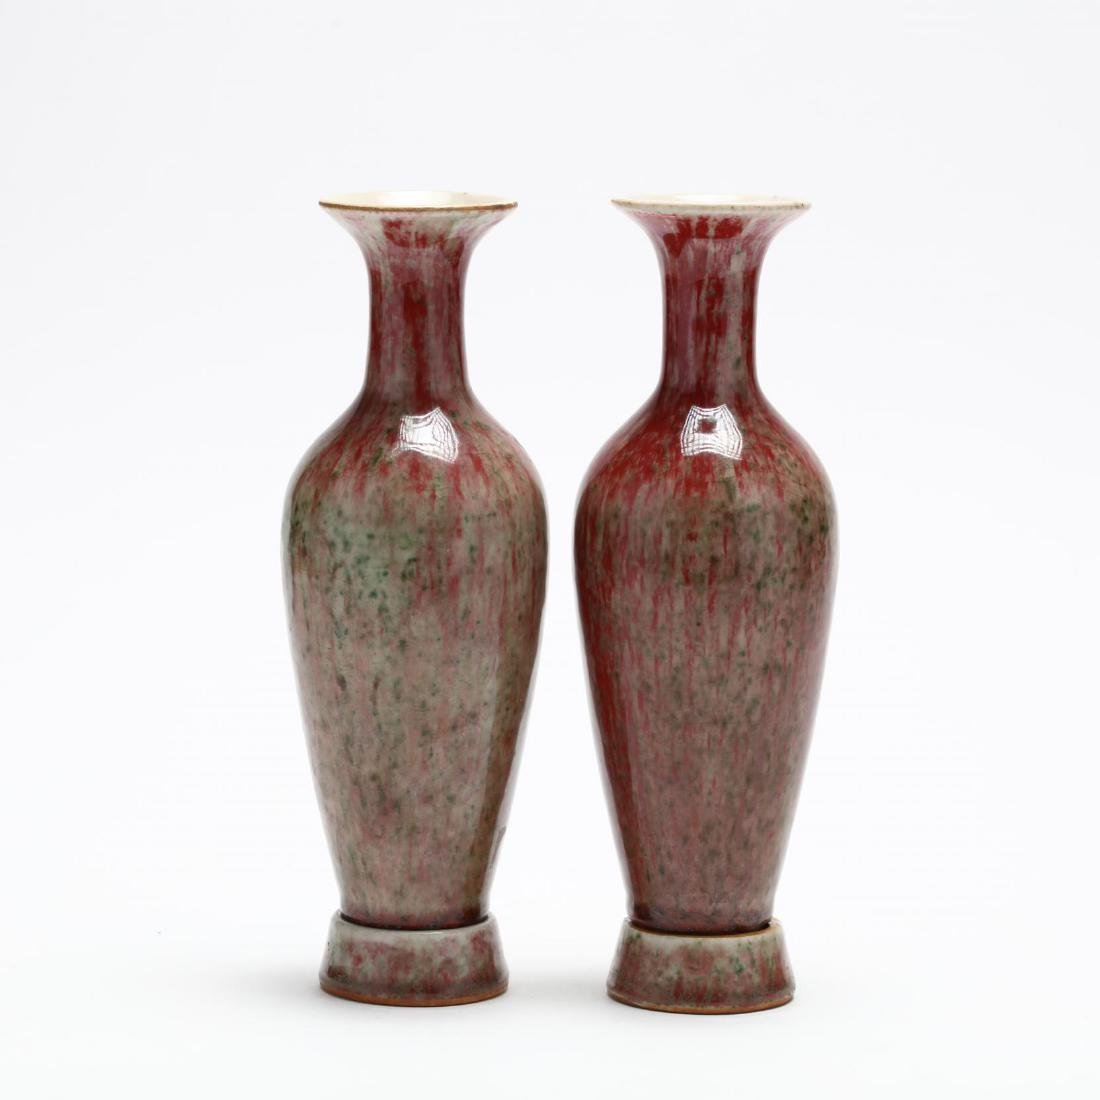 A Pair of Chinese Porcelain Peach Bloom Vases with